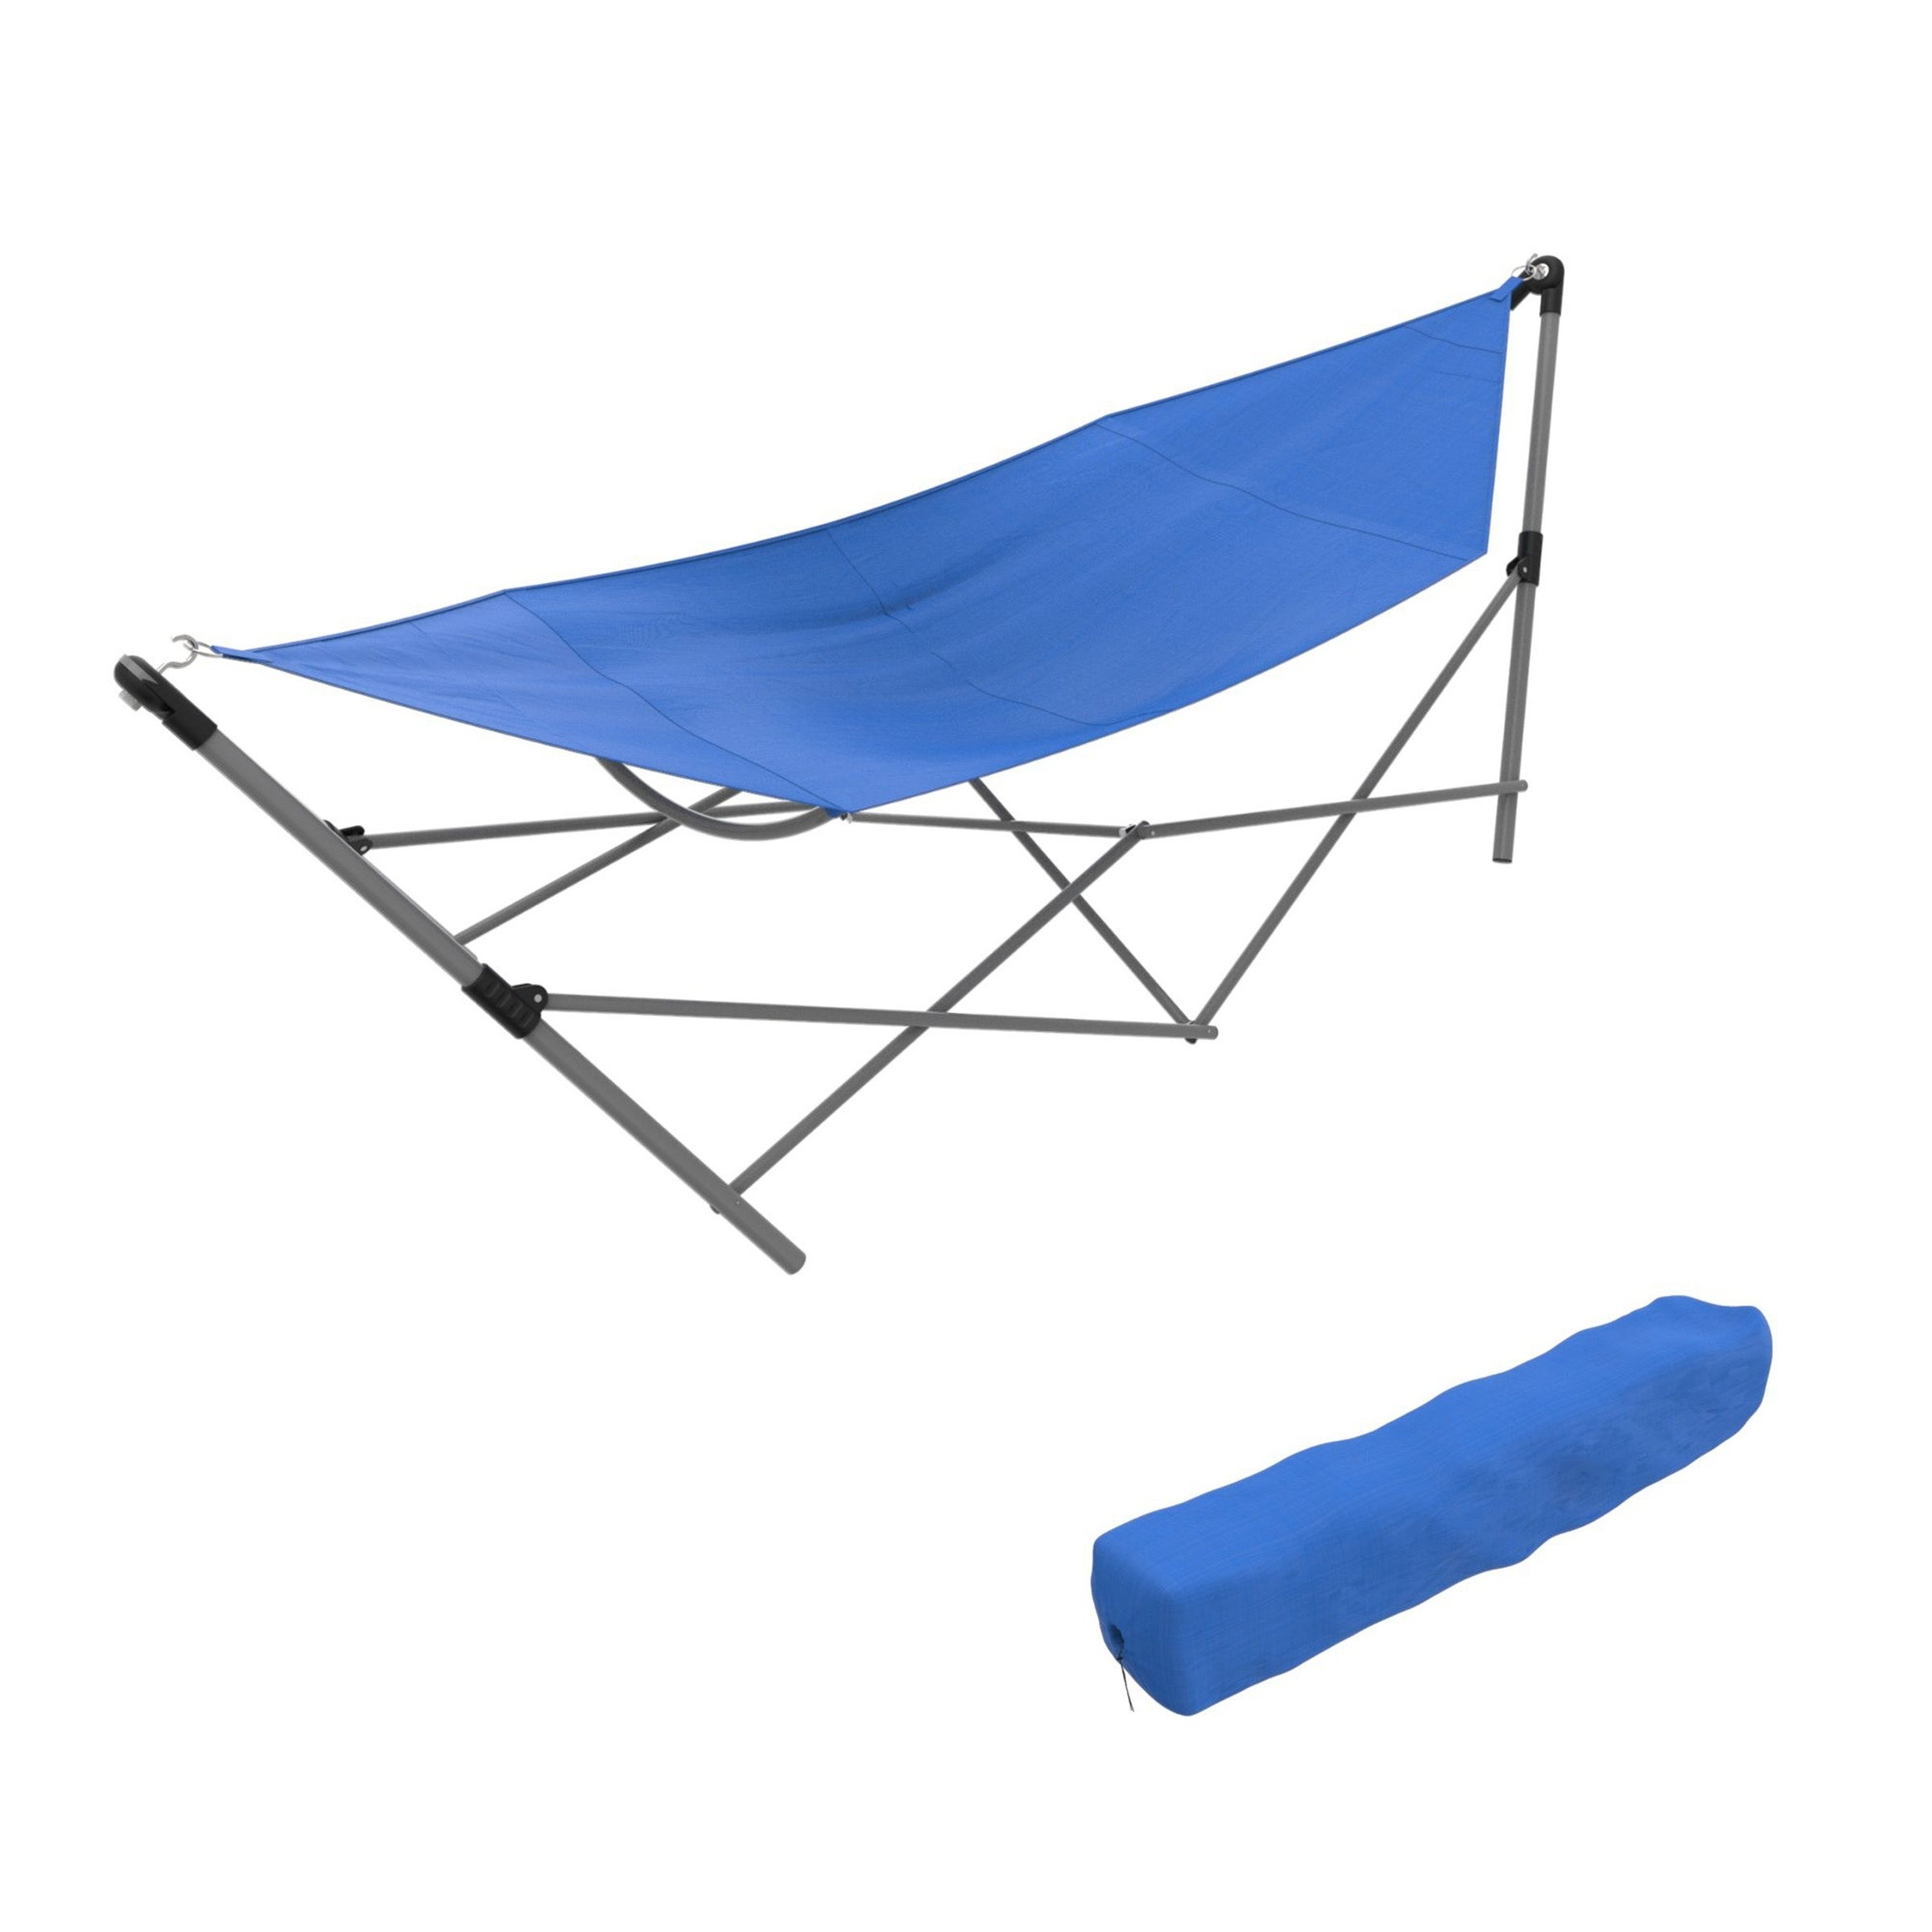 single com the hammocks top portable for amazon gear furniture helpful rated camping wise owl travel hammock ul double outdoors outfitters coleman pcr or in backpacking customer survival reviews quality best